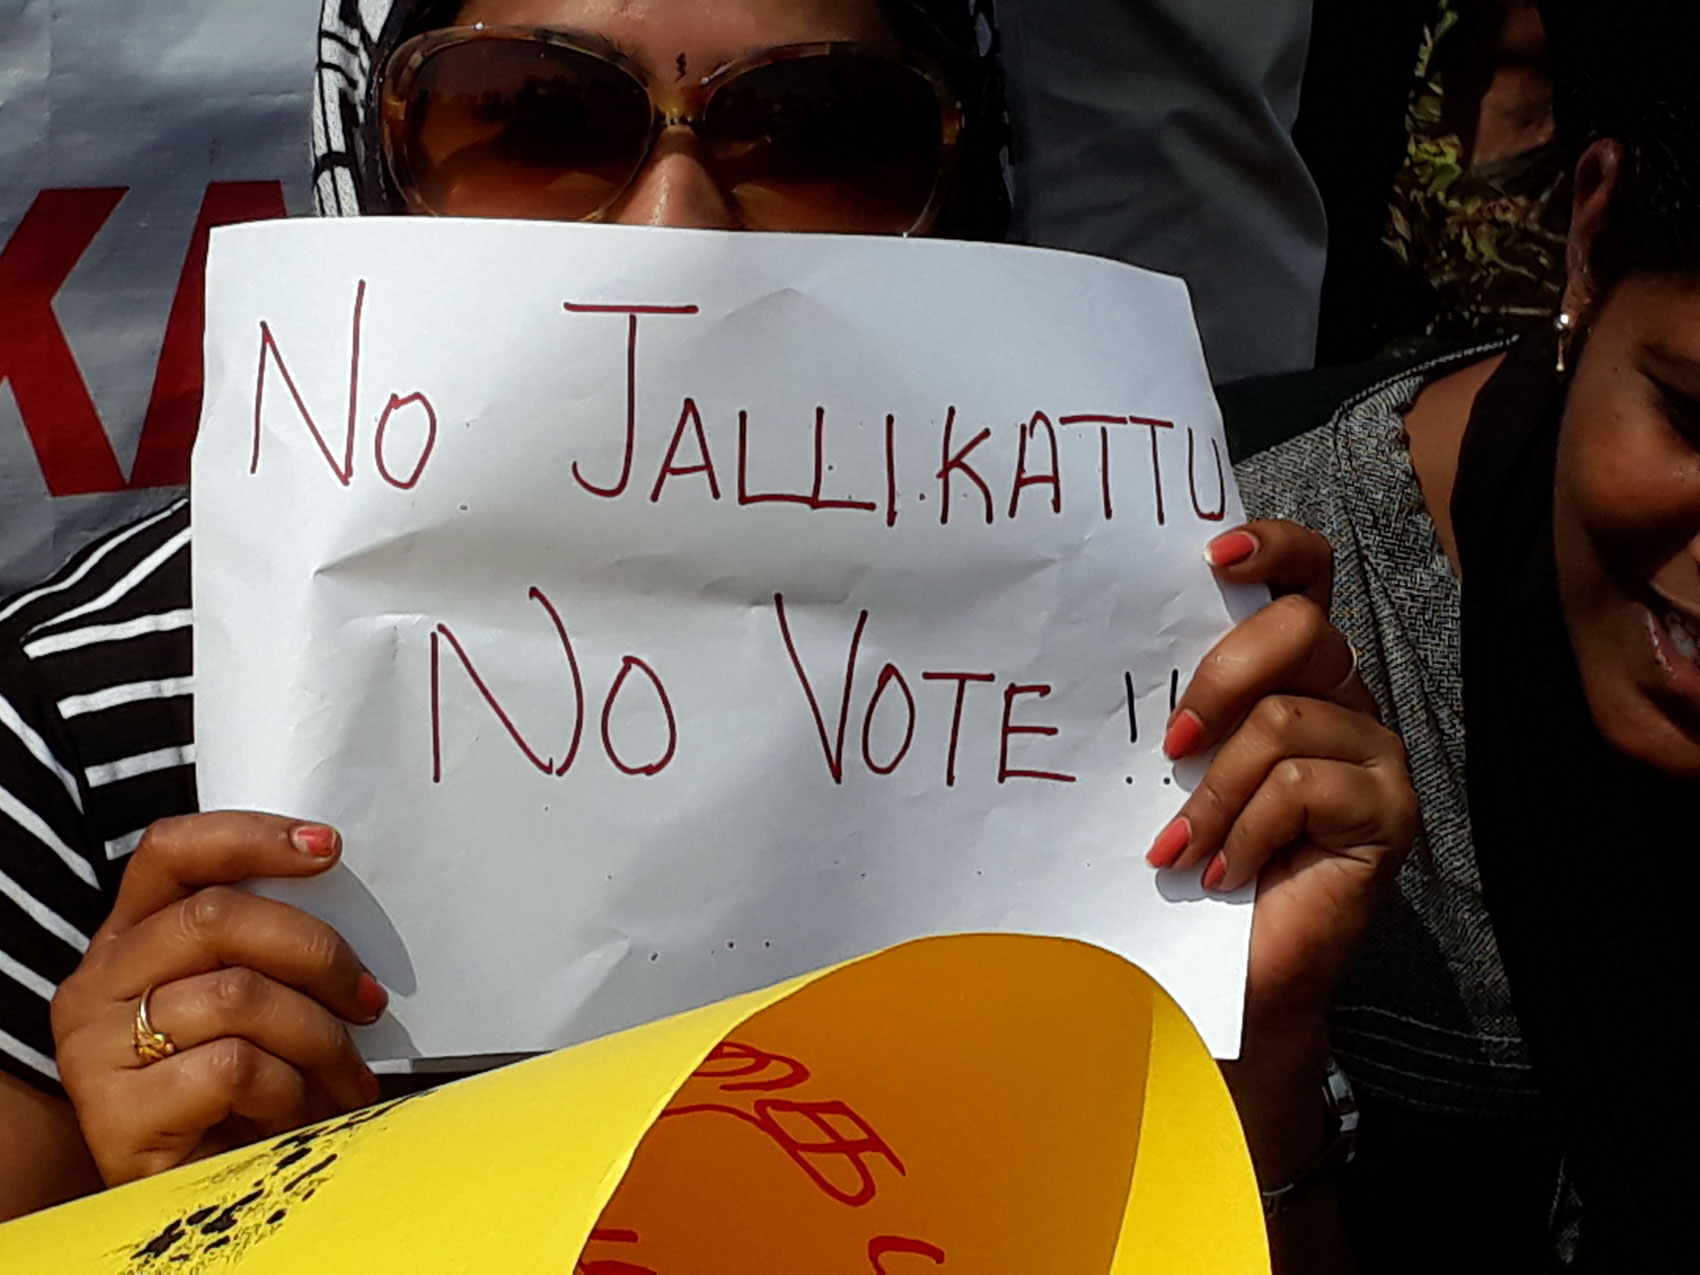 no jallikattu and no vote